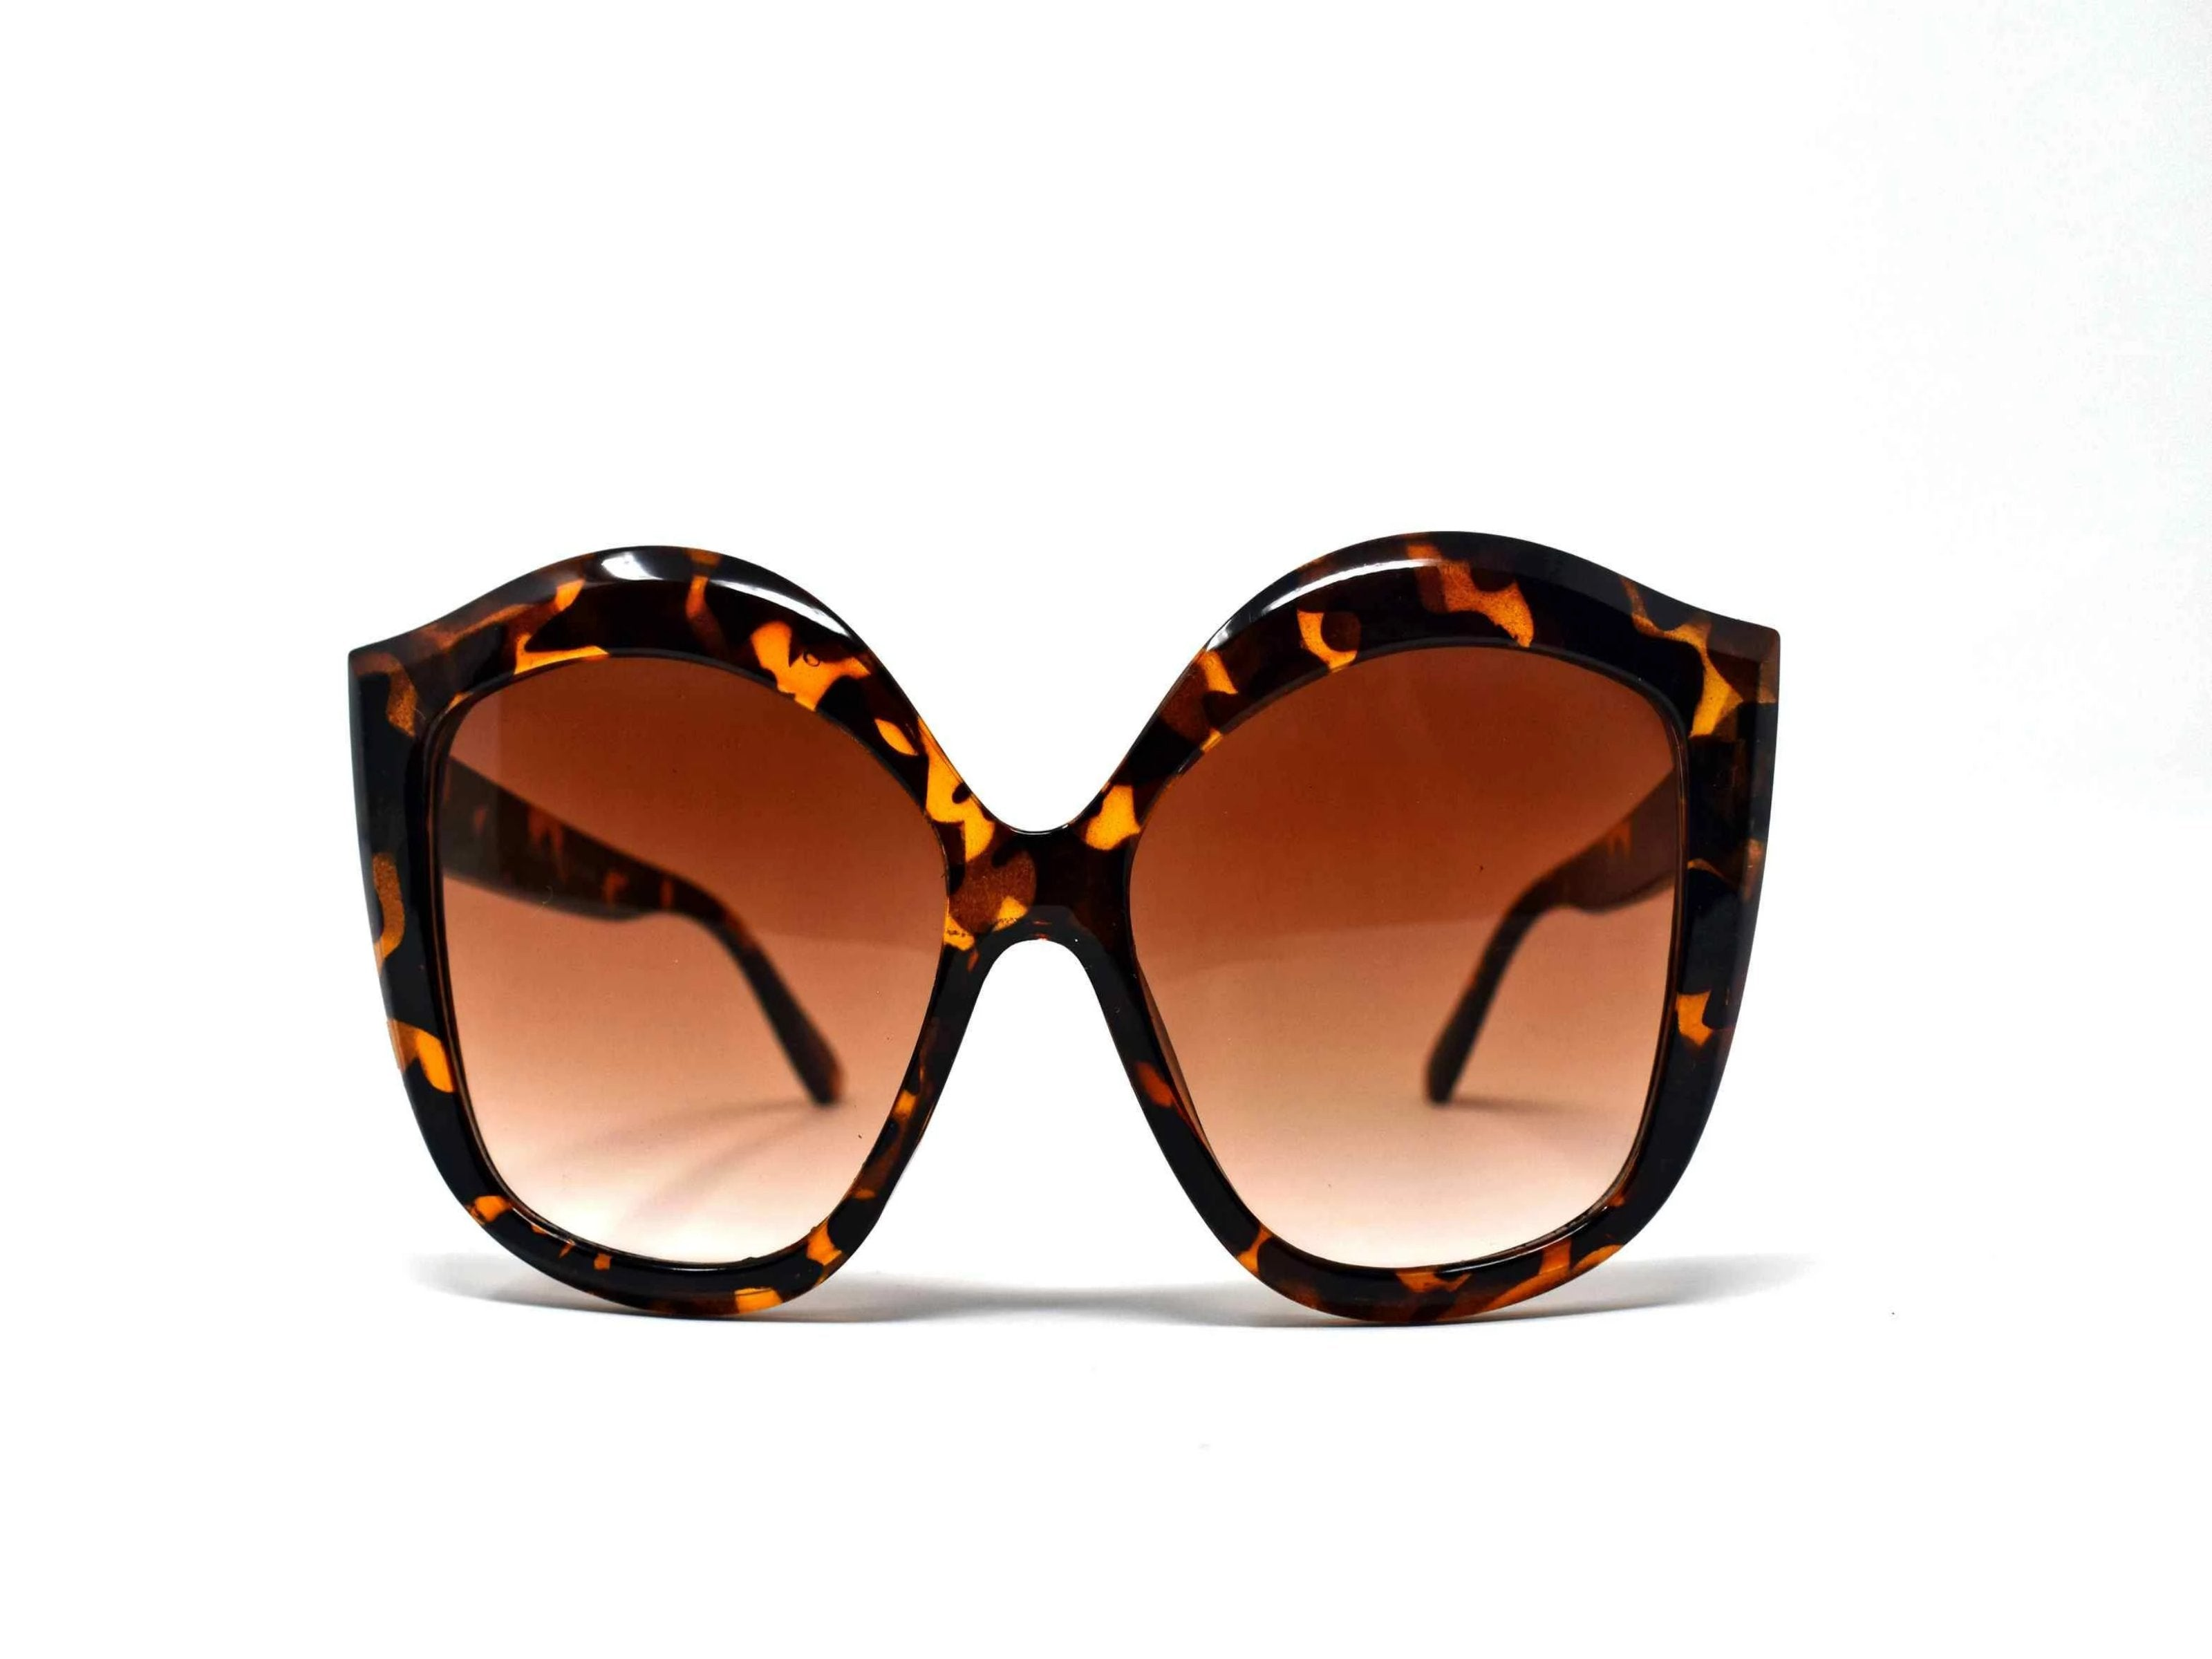 Retro glam has come again with our Petal Leopard cat eye frame sunglasses with a black lens.